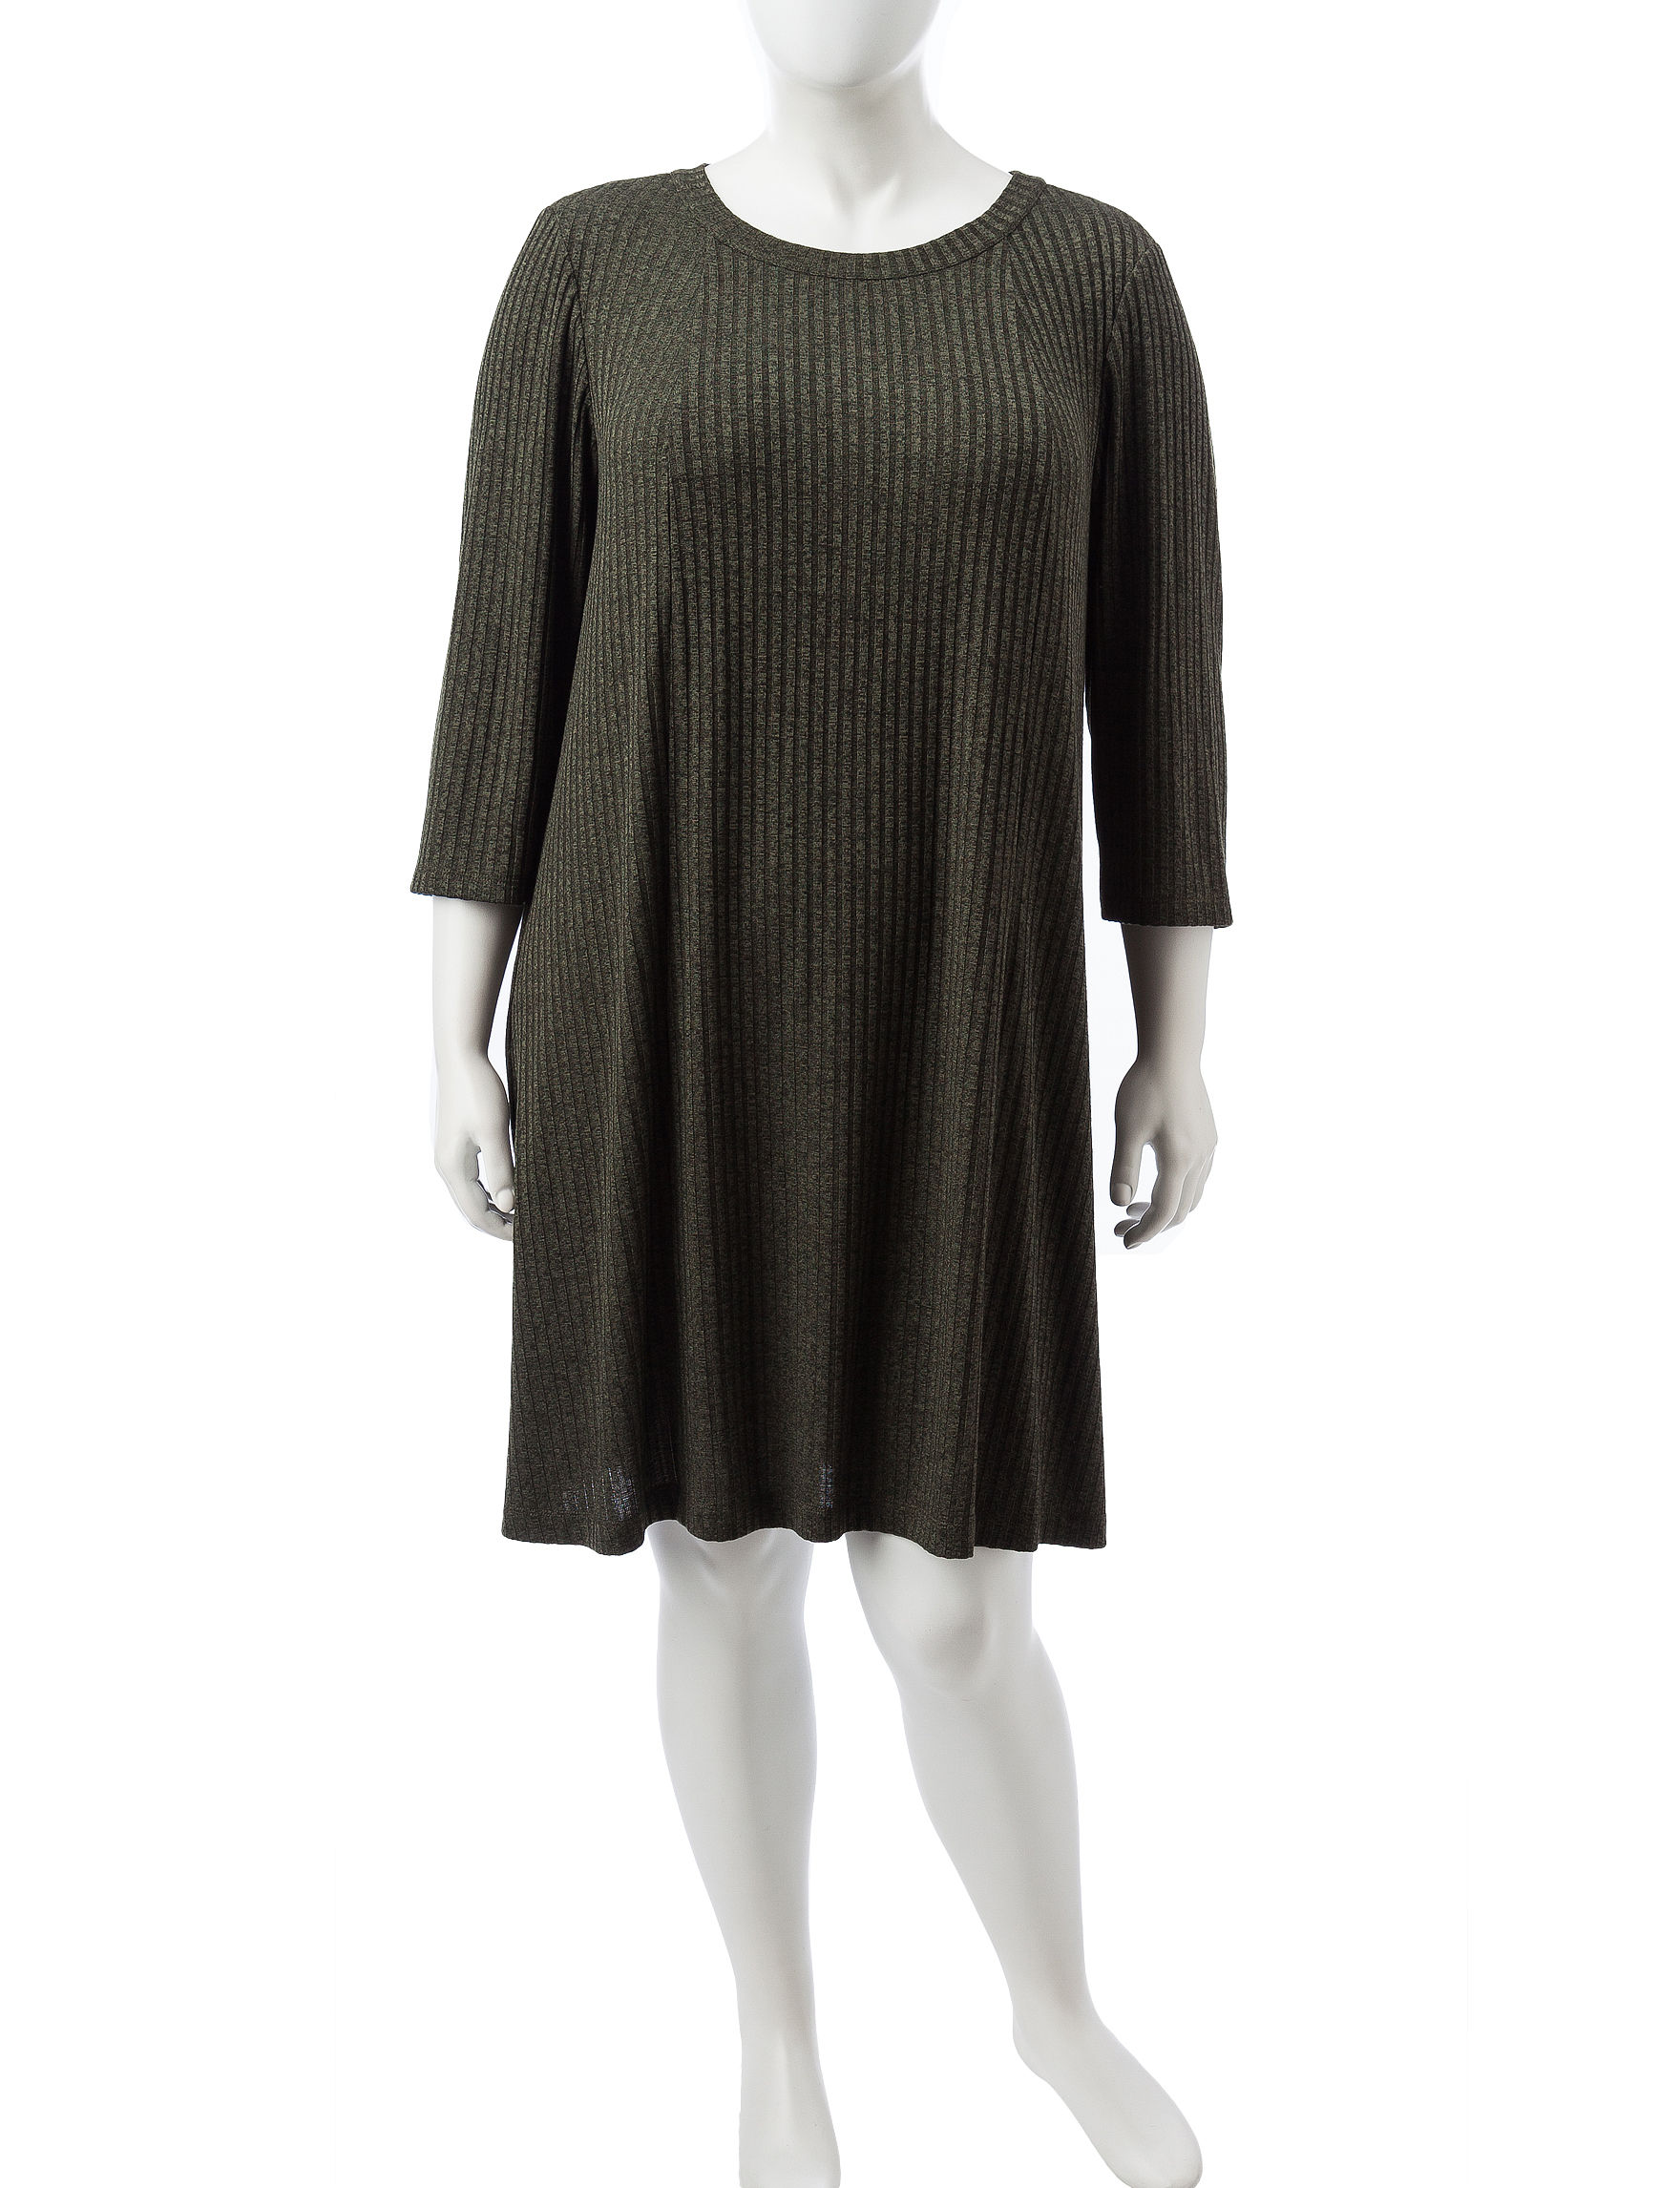 Perceptions Olive Everyday & Casual Shift Dresses